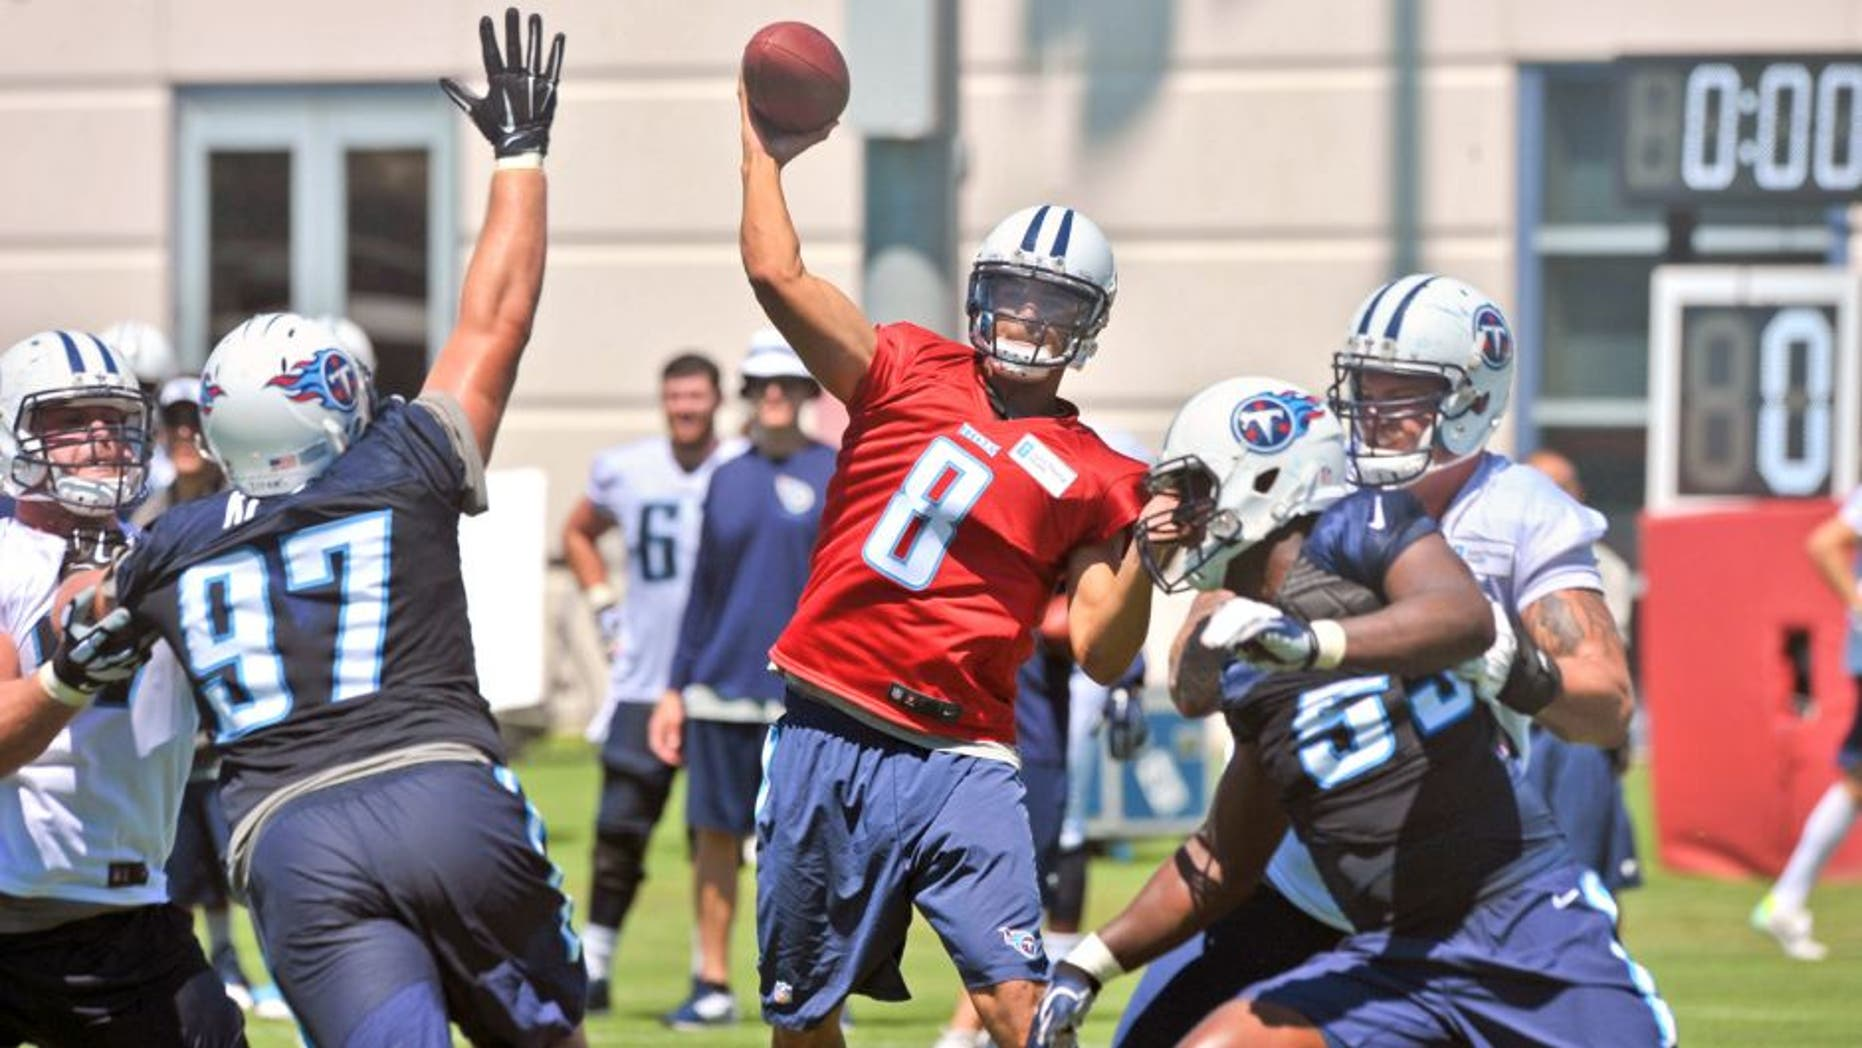 Jul 31, 2015; Nashville, TN, USA; Tennessee Titans quarterback Marcus Mariota (8) passes against Titans defensive lineman Karl Klug (97) during his first day of training camp at Saint Thomas Sports Park. Mandatory Credit: Jim Brown-USA TODAY Sports